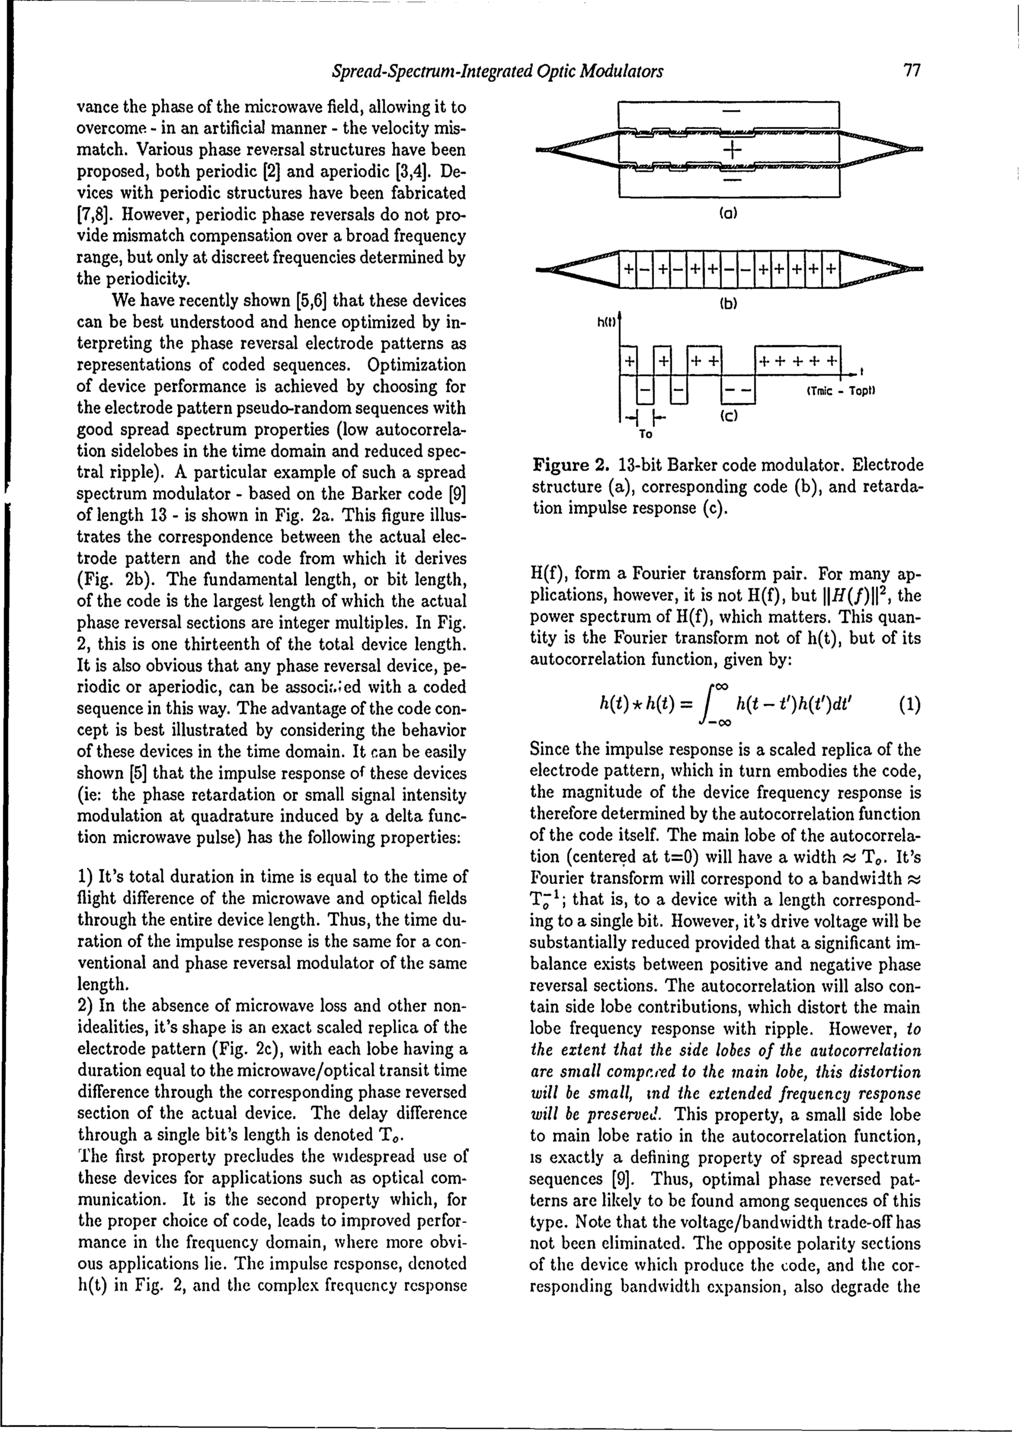 Spread-Spectrum-Integrated Optic Modulators 77 vance the phase of the microwave field, allowing it to overcome - in an artificial manner - the velocity mismatch.